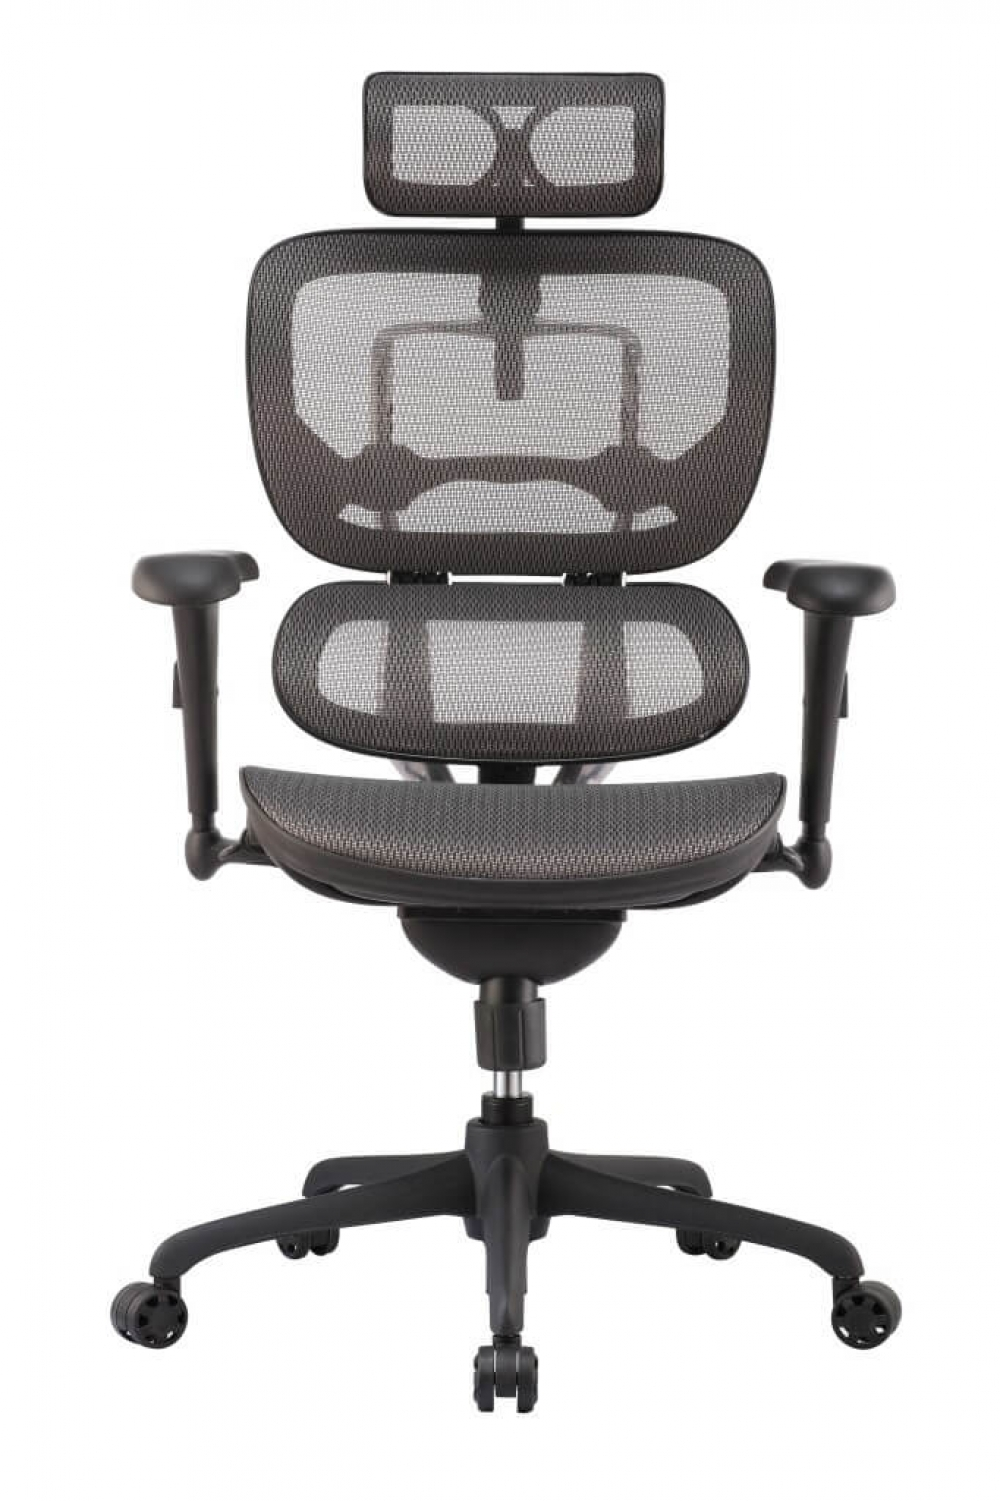 High back office chairs front view